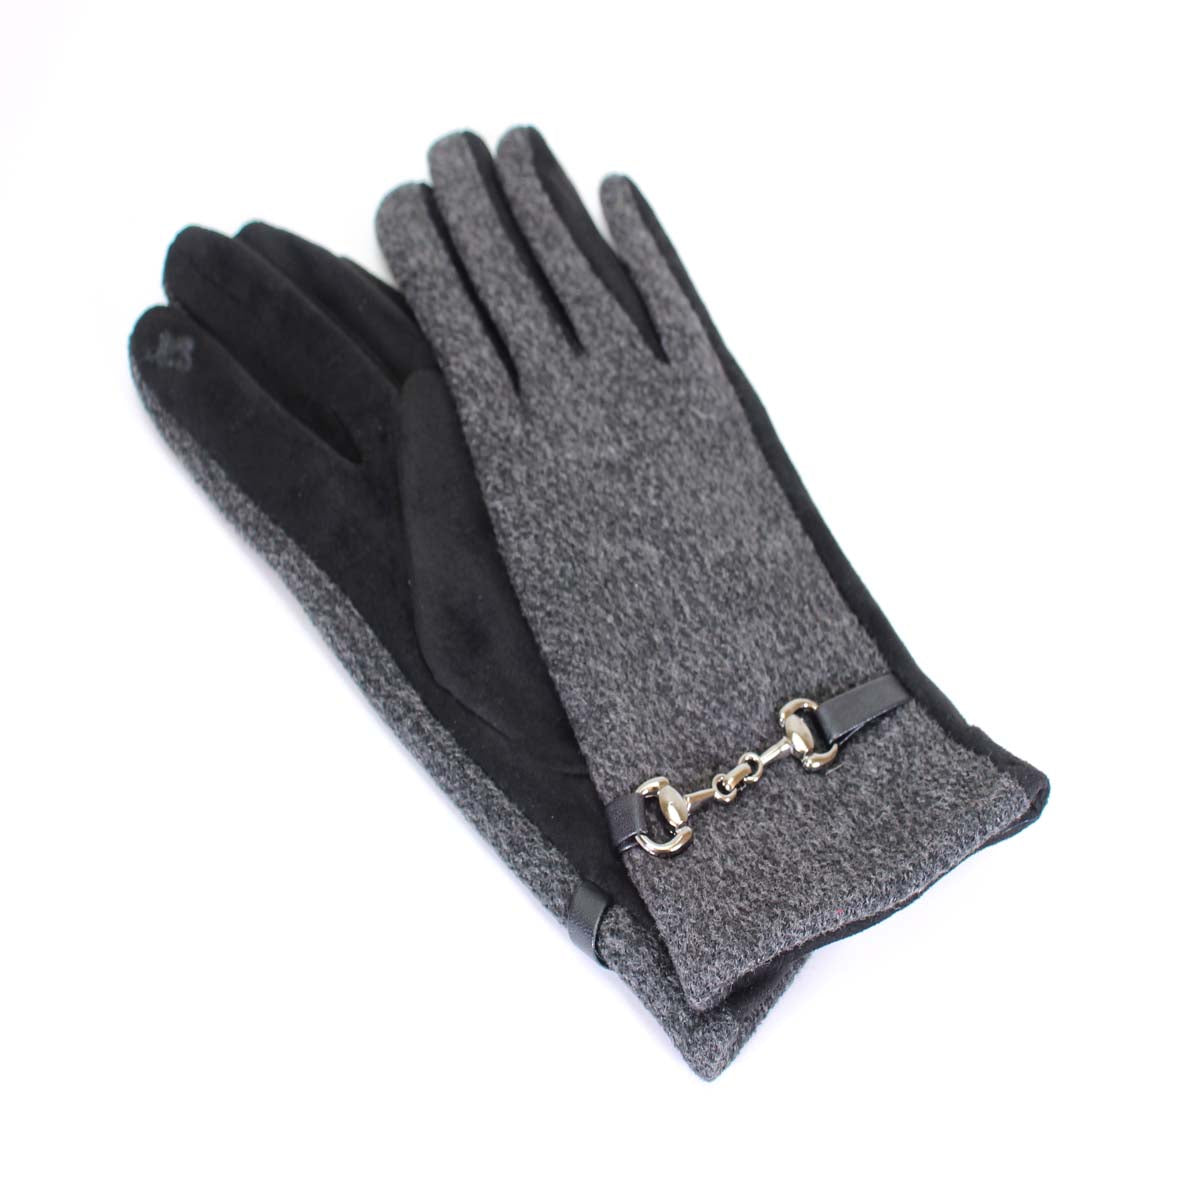 Fashion gloves w/ smart touch